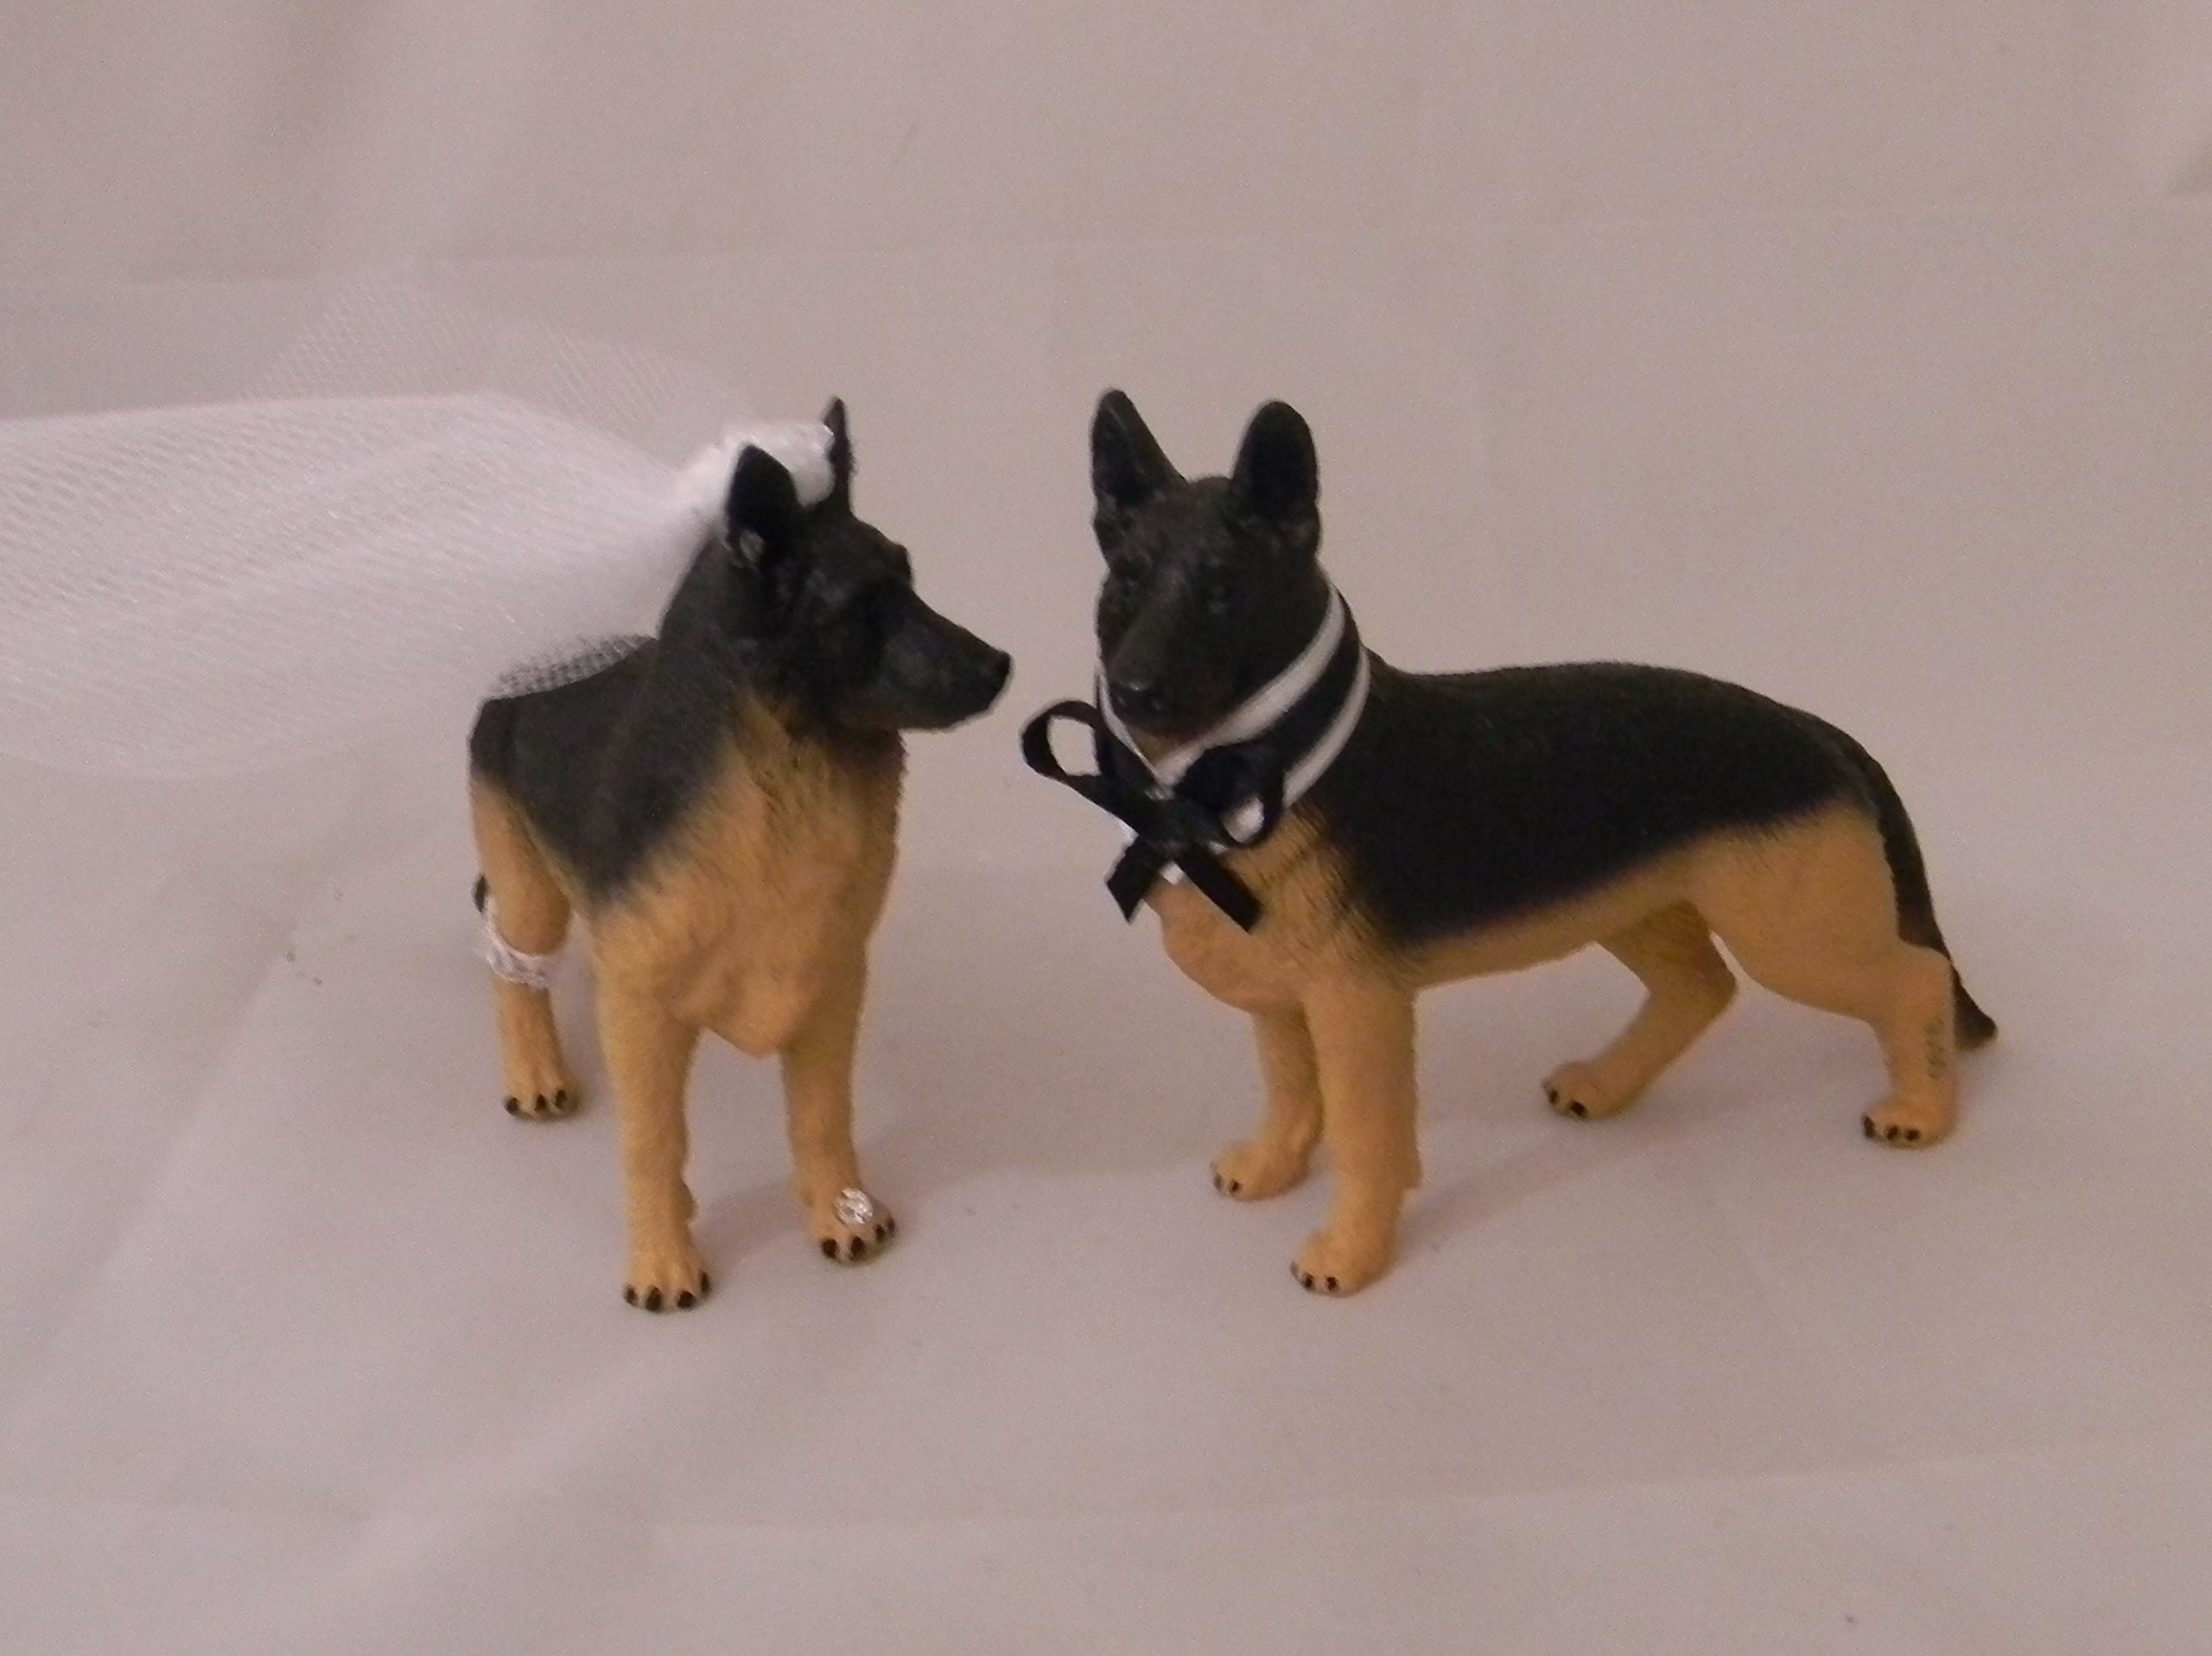 Wedding Reception Police German Shepard Dogs Pet Party Cake Topper by Custom Design Wedding Supplies by Suzanne